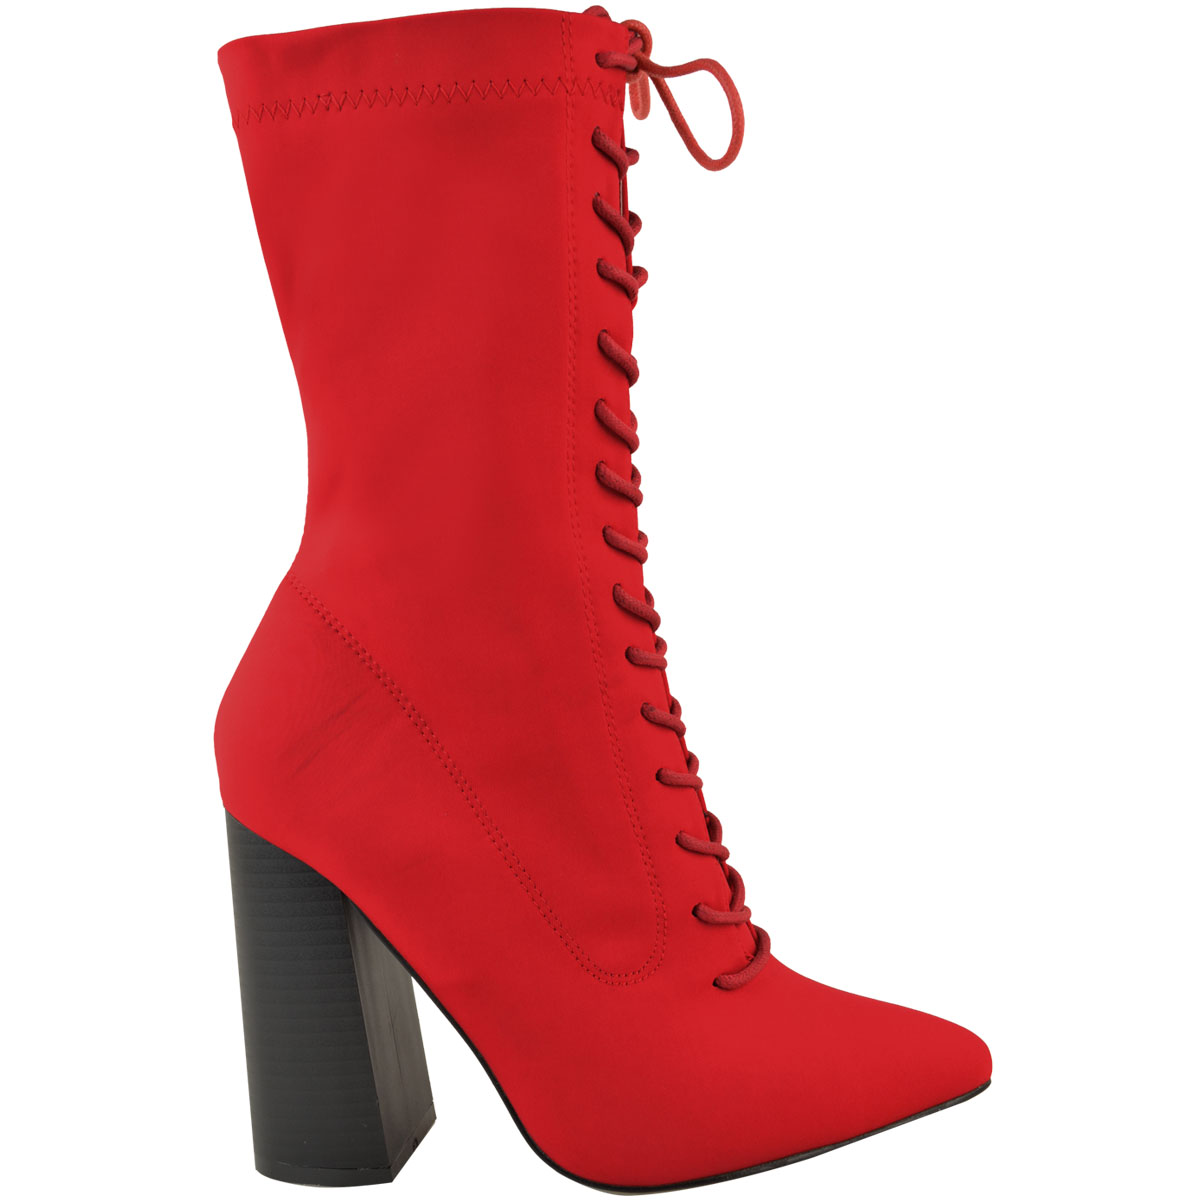 Womens-Ladies-New-Calf-Ankle-Boots-Lycra-Lace-Up-Shoes-Pointed-Toe-Stretch-Size miniatuur 7